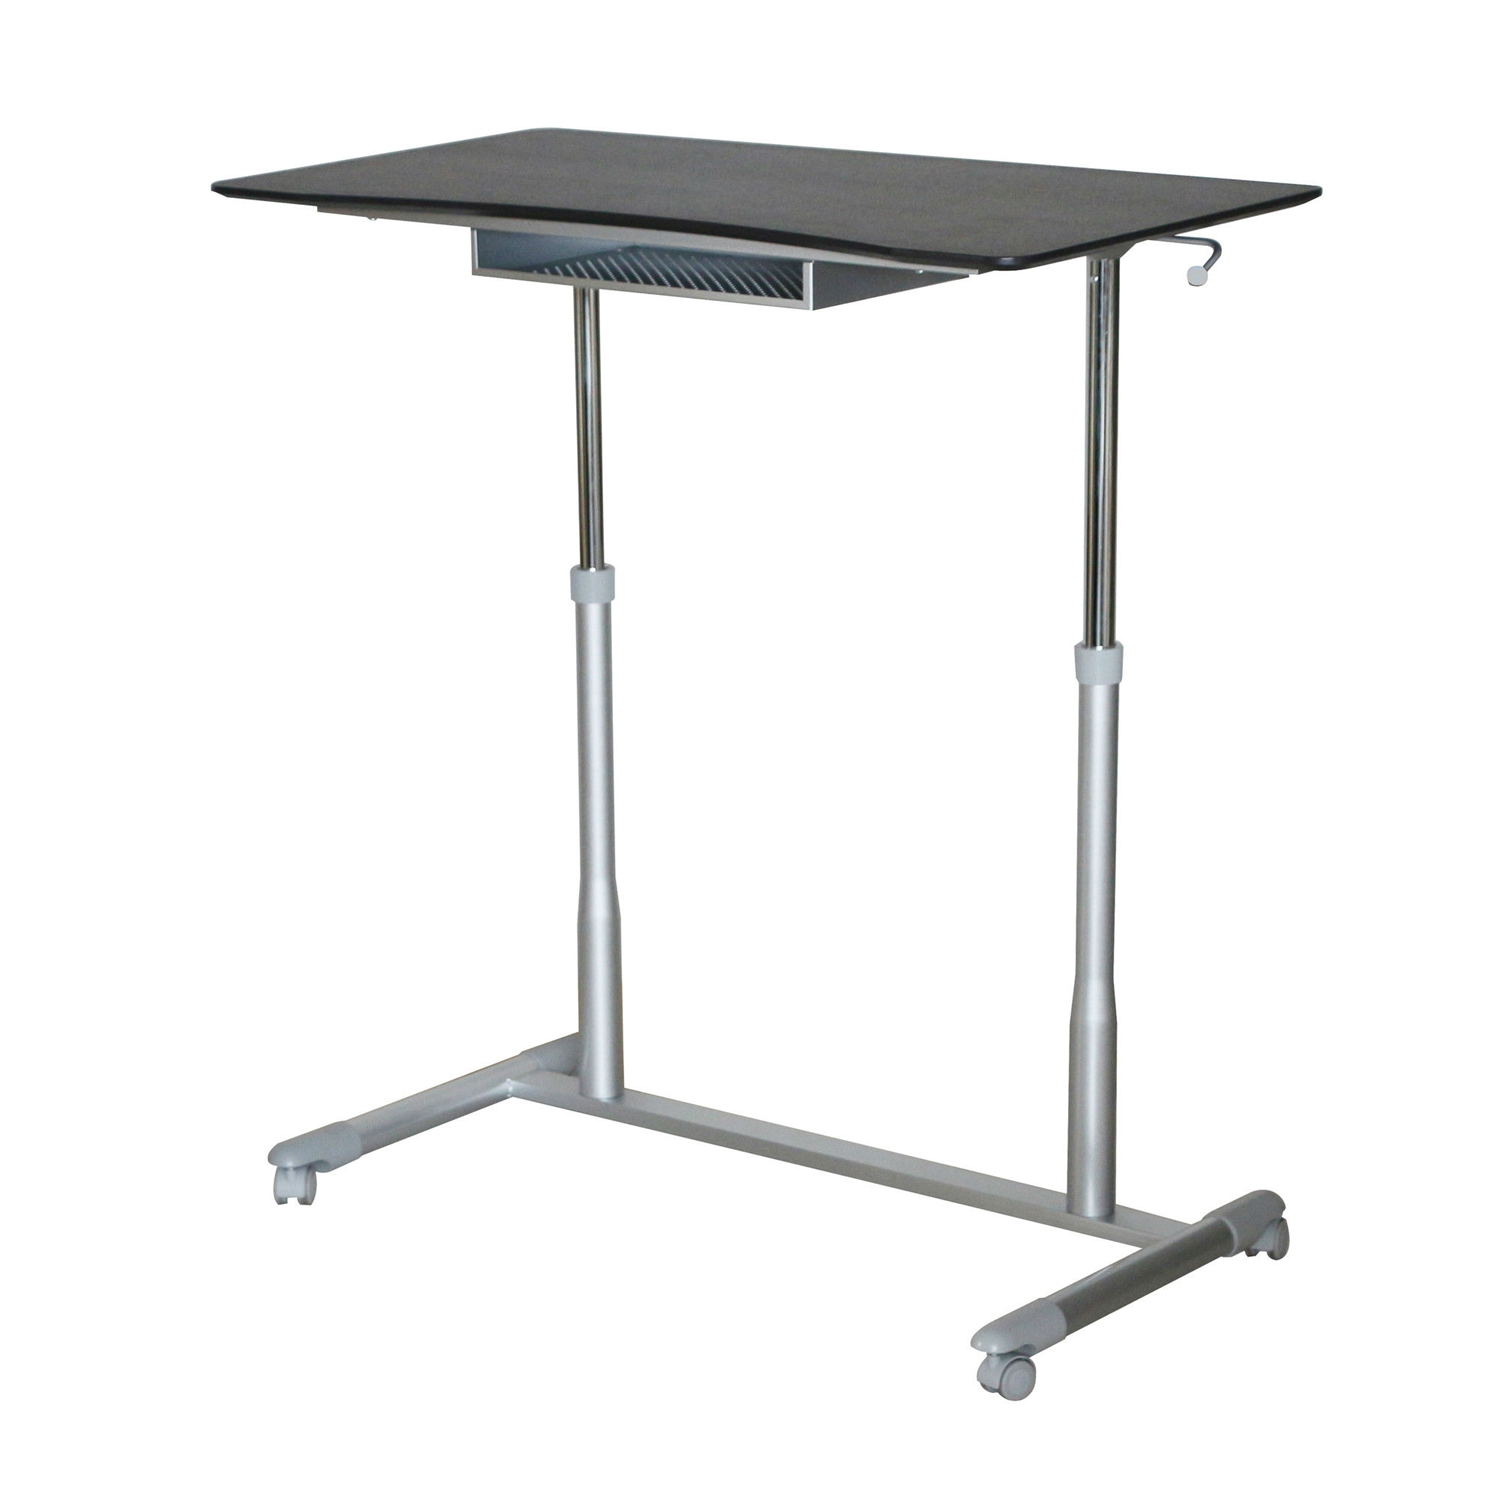 Espresso Adjustable Height Sitting Standing Desk Ergonomic Mobile